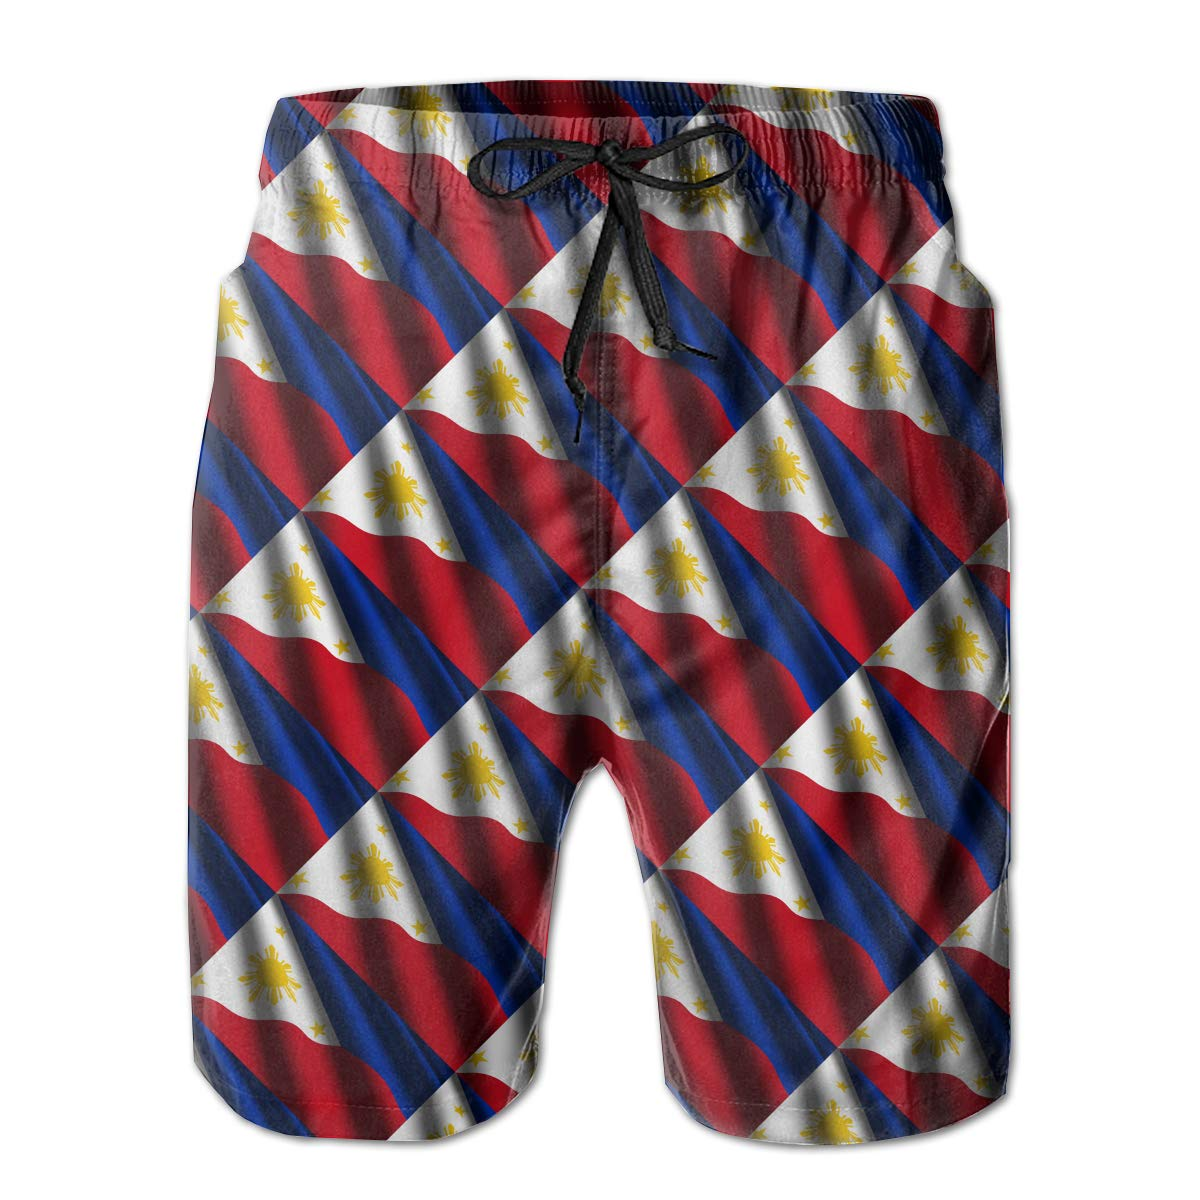 RolandracePhilippines Waving Flag Tie Mens Swim Trunks Quick Dry Bathing Suits Beach Holiday Party Board Shorts